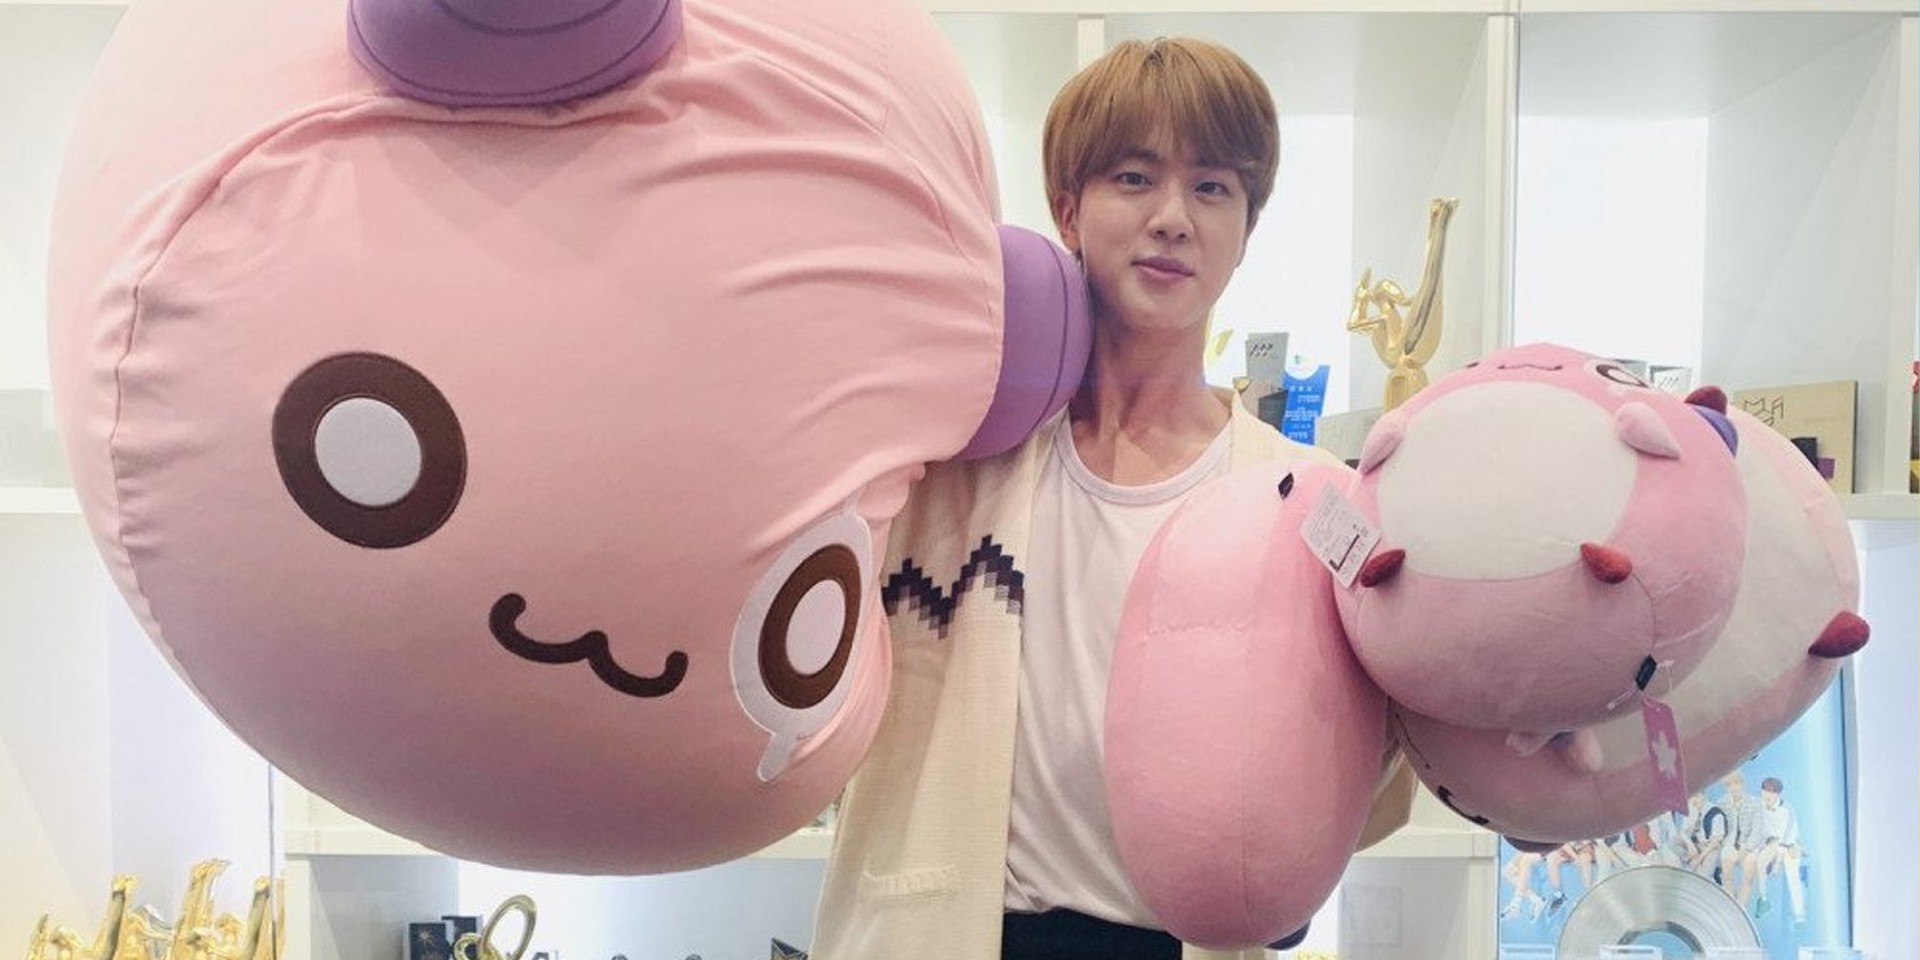 Get BTS' Jin to check out your artwork at MapleStory's 1st Golden Hands Awards